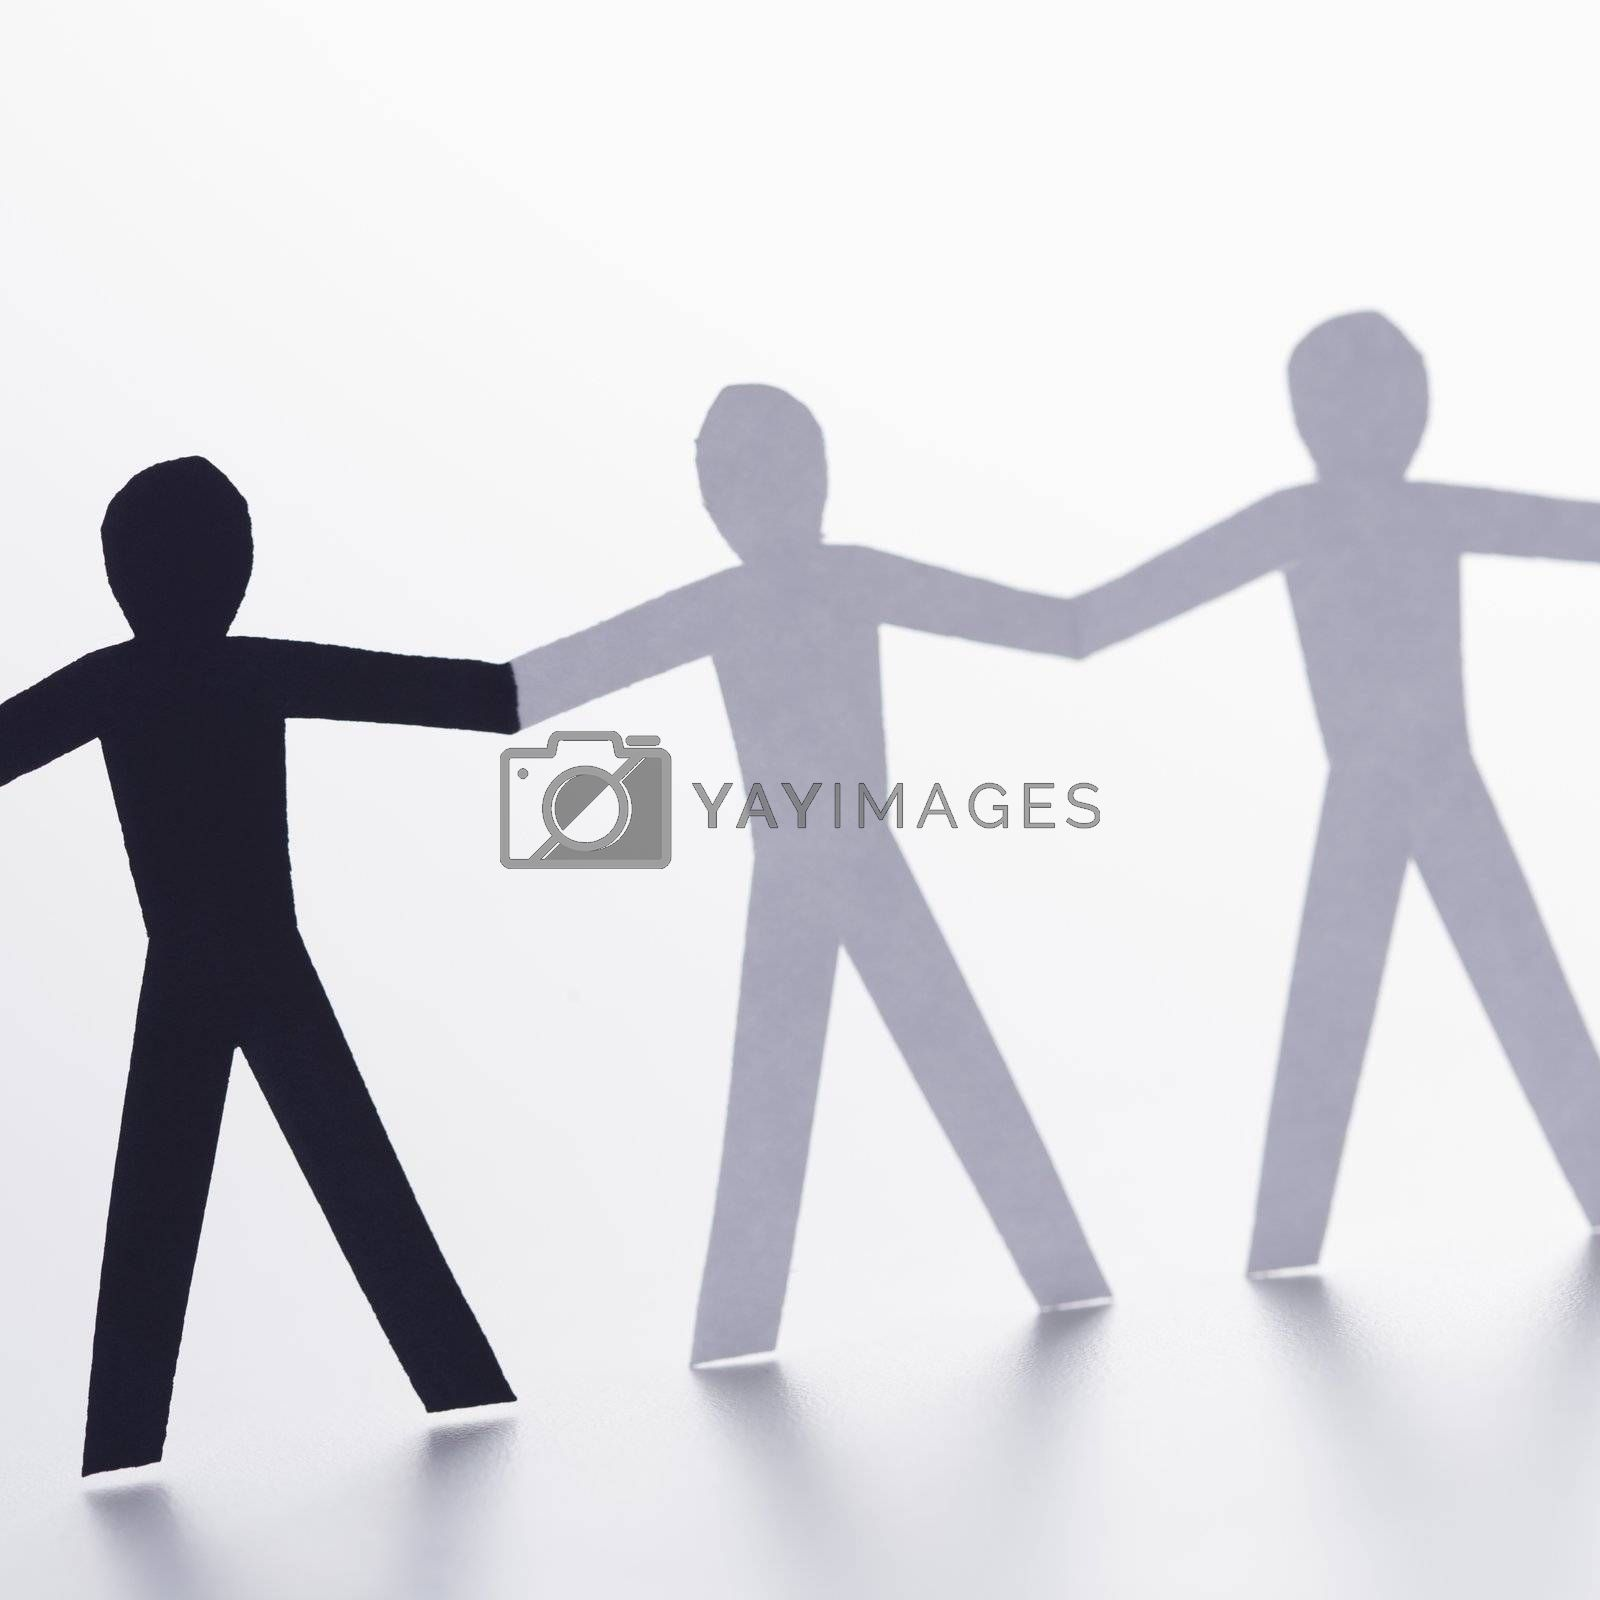 Black and white cutout paper people holding hands.